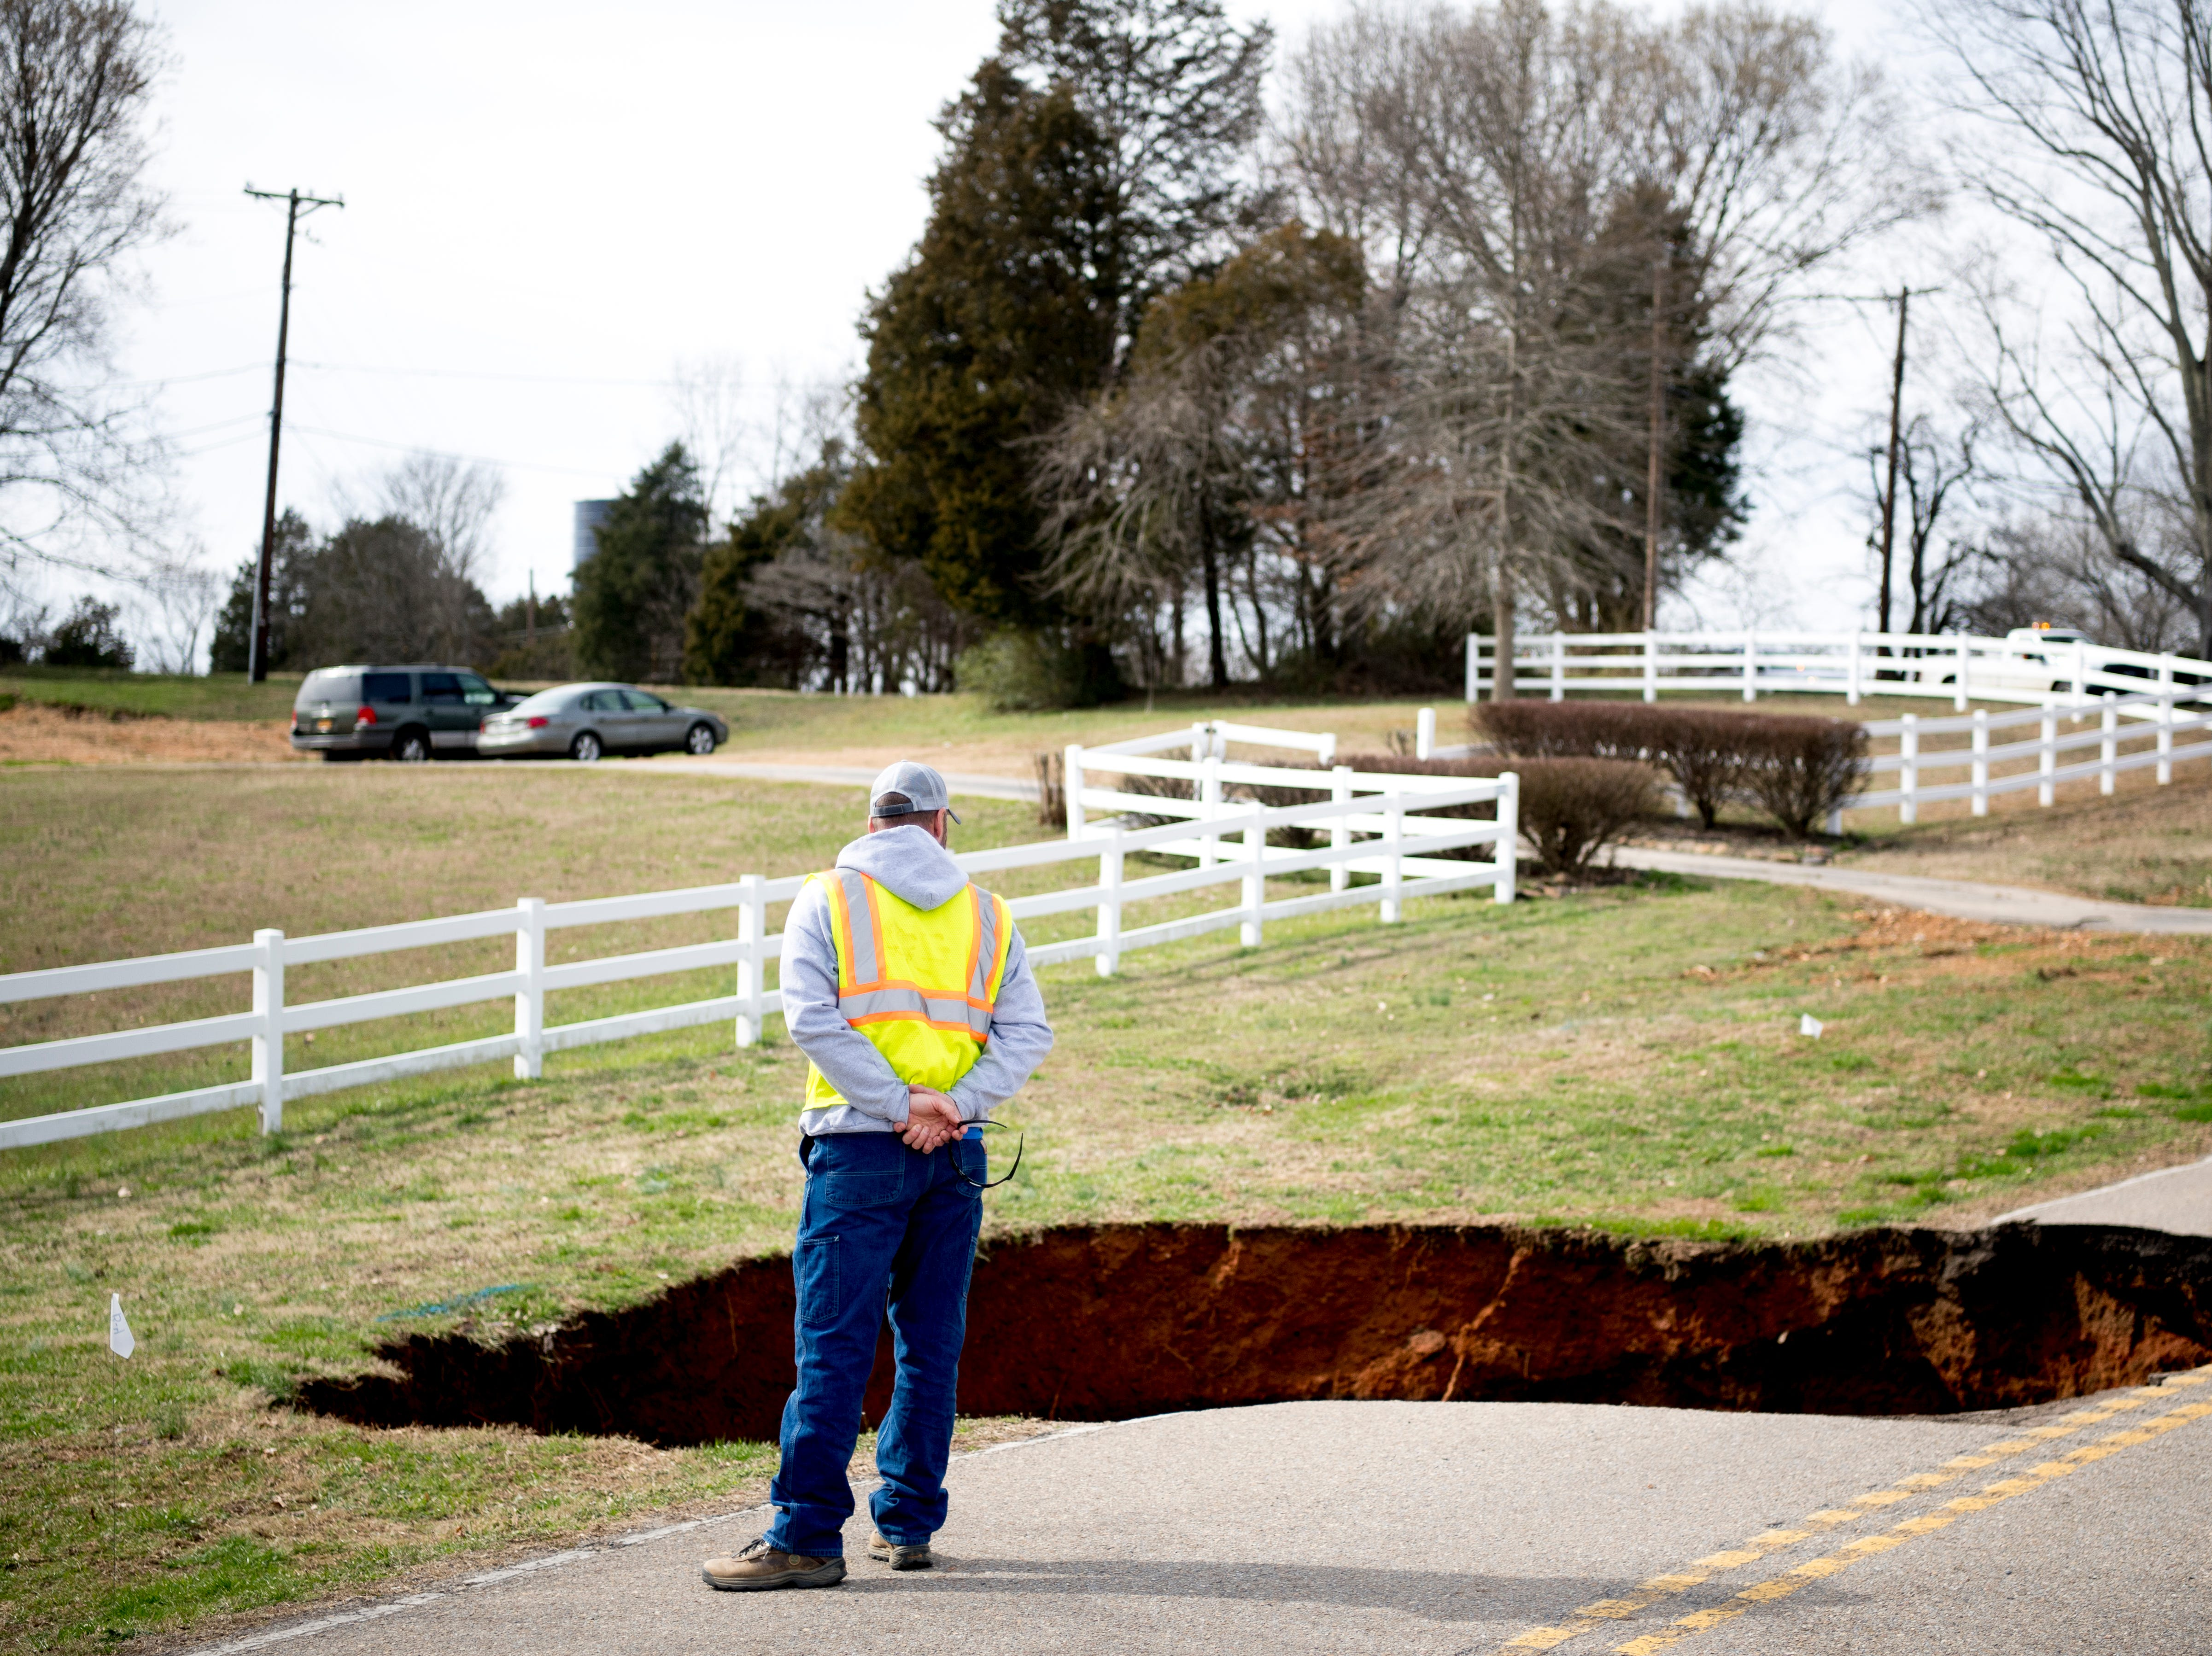 Travis Farmer, with Hallsdale-Powell Utility District, gets a better view of a large sinkhole on Greenwell Road in Powell, Tennessee on Tuesday, February 26, 2019. The sinkhole is estimated to be around 20 feet deep.